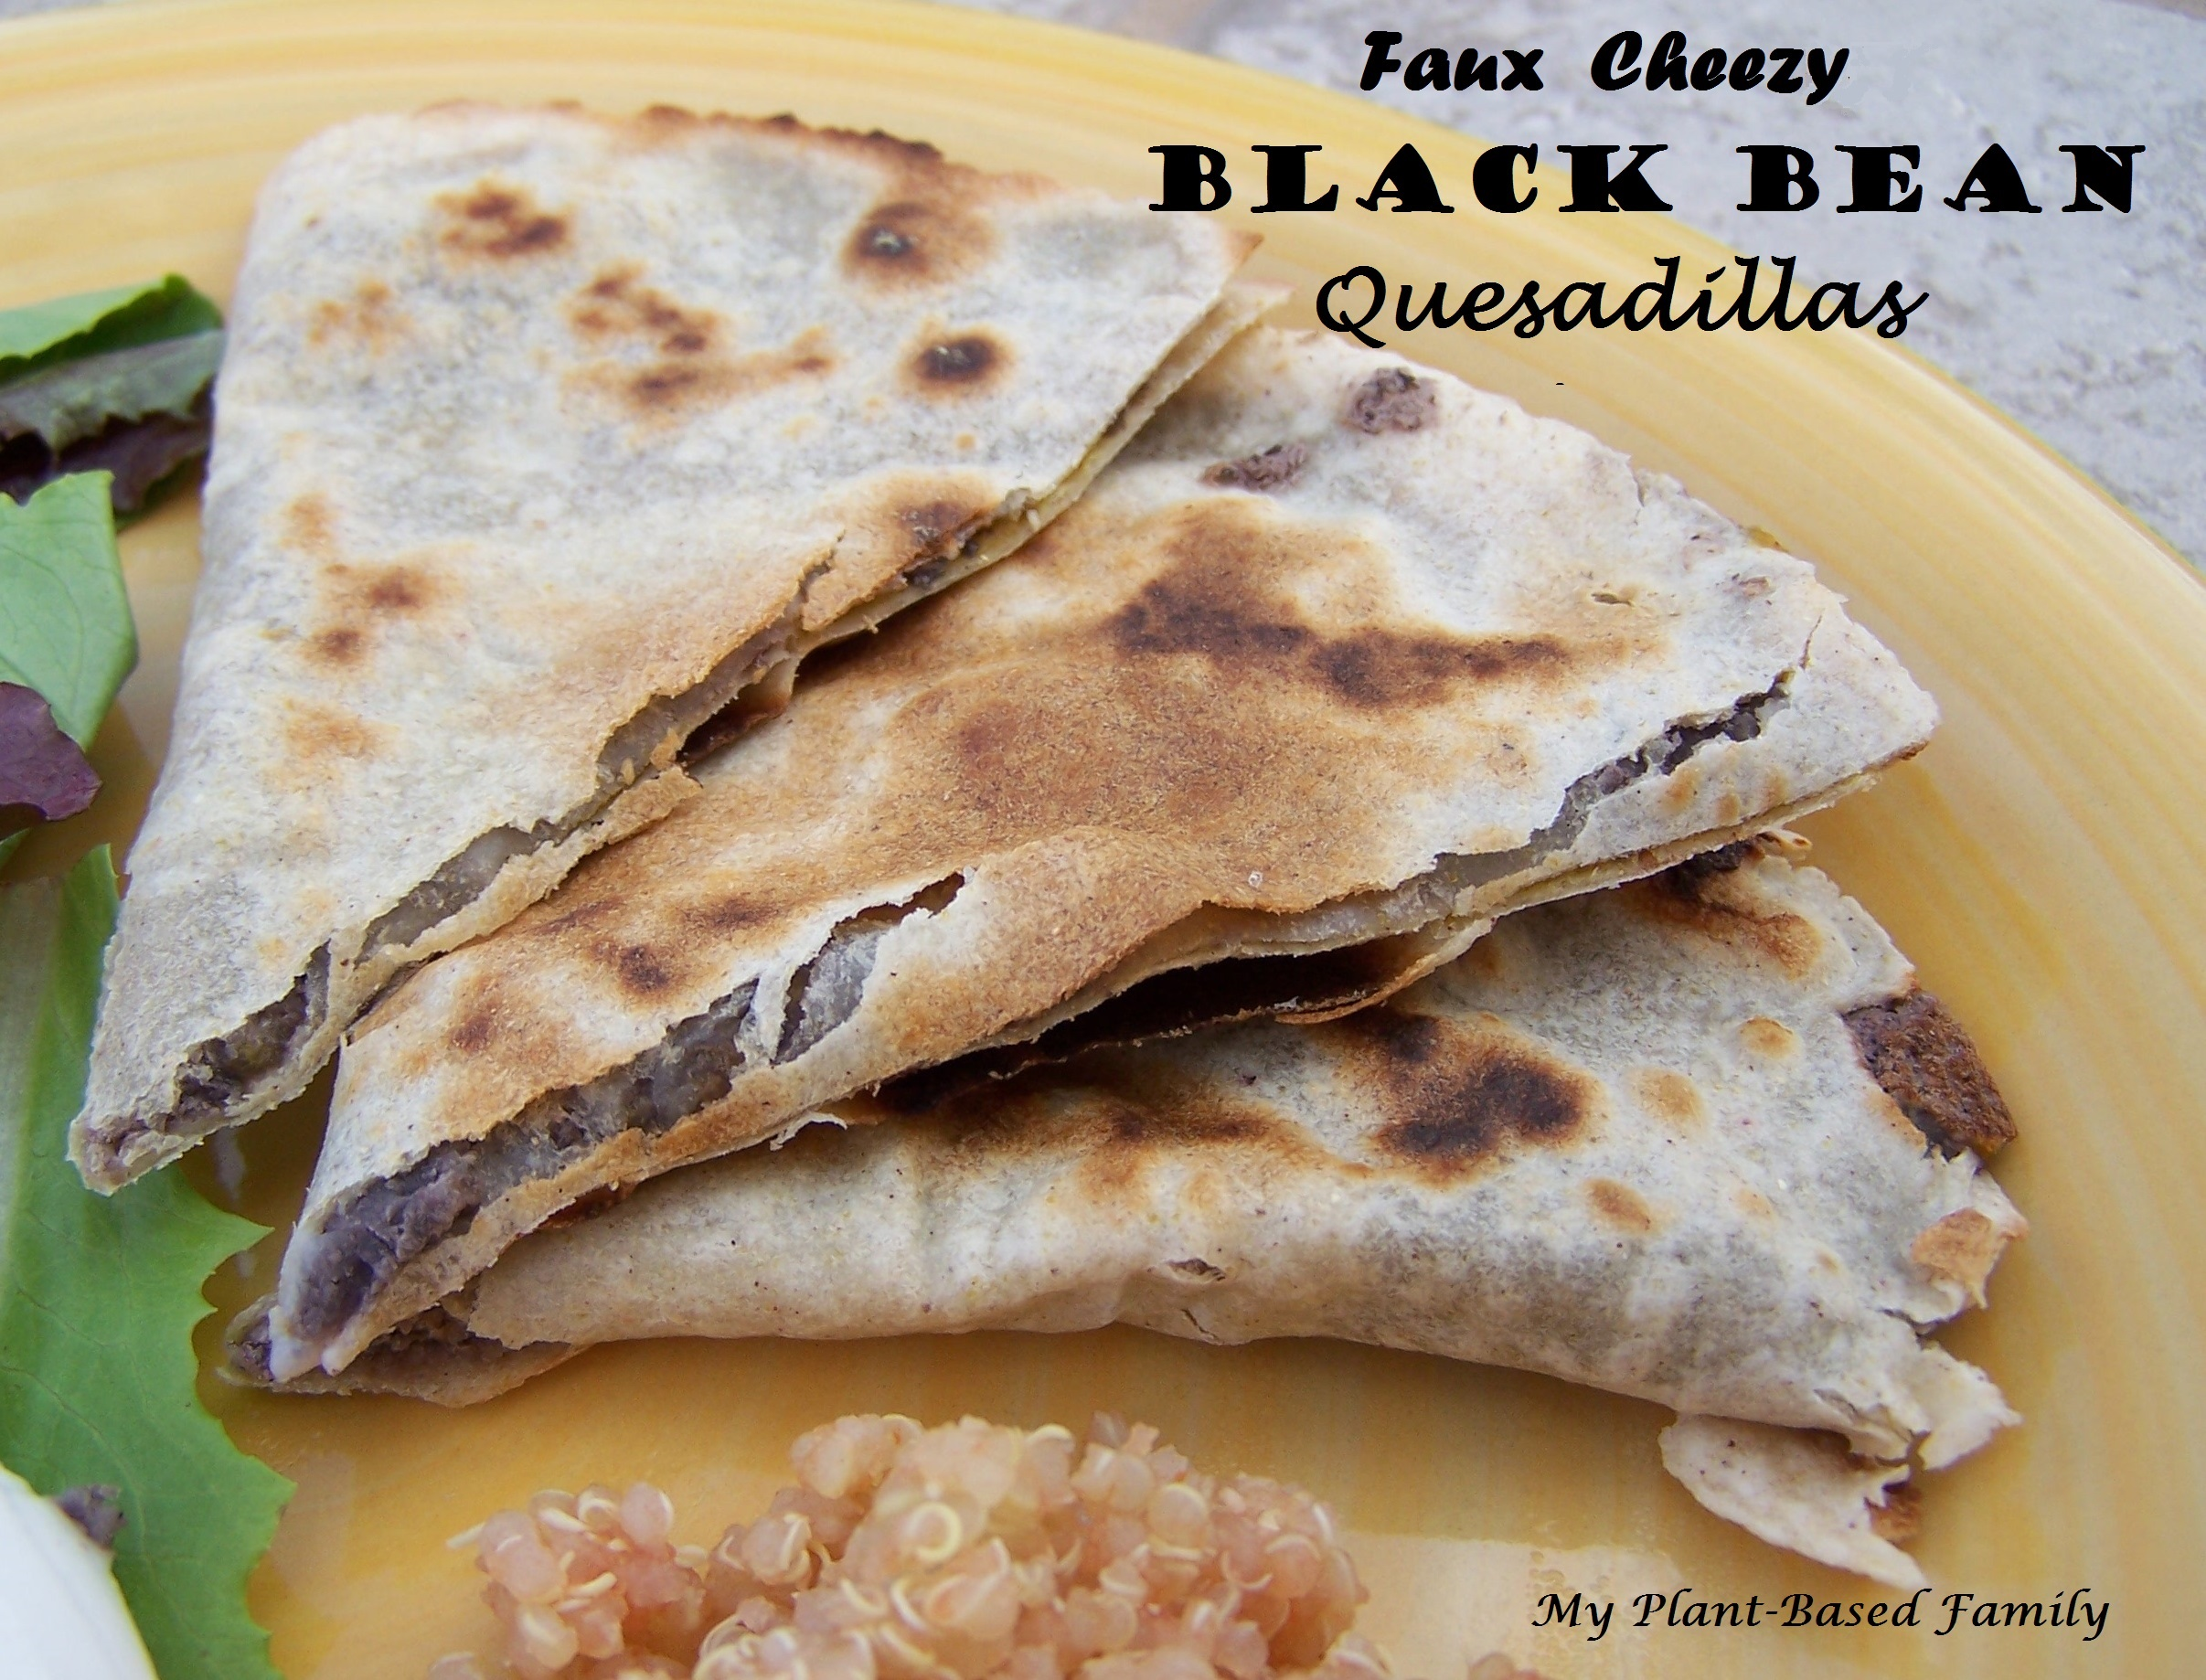 Gluten-Free Vegan Black Bean Quesadillas